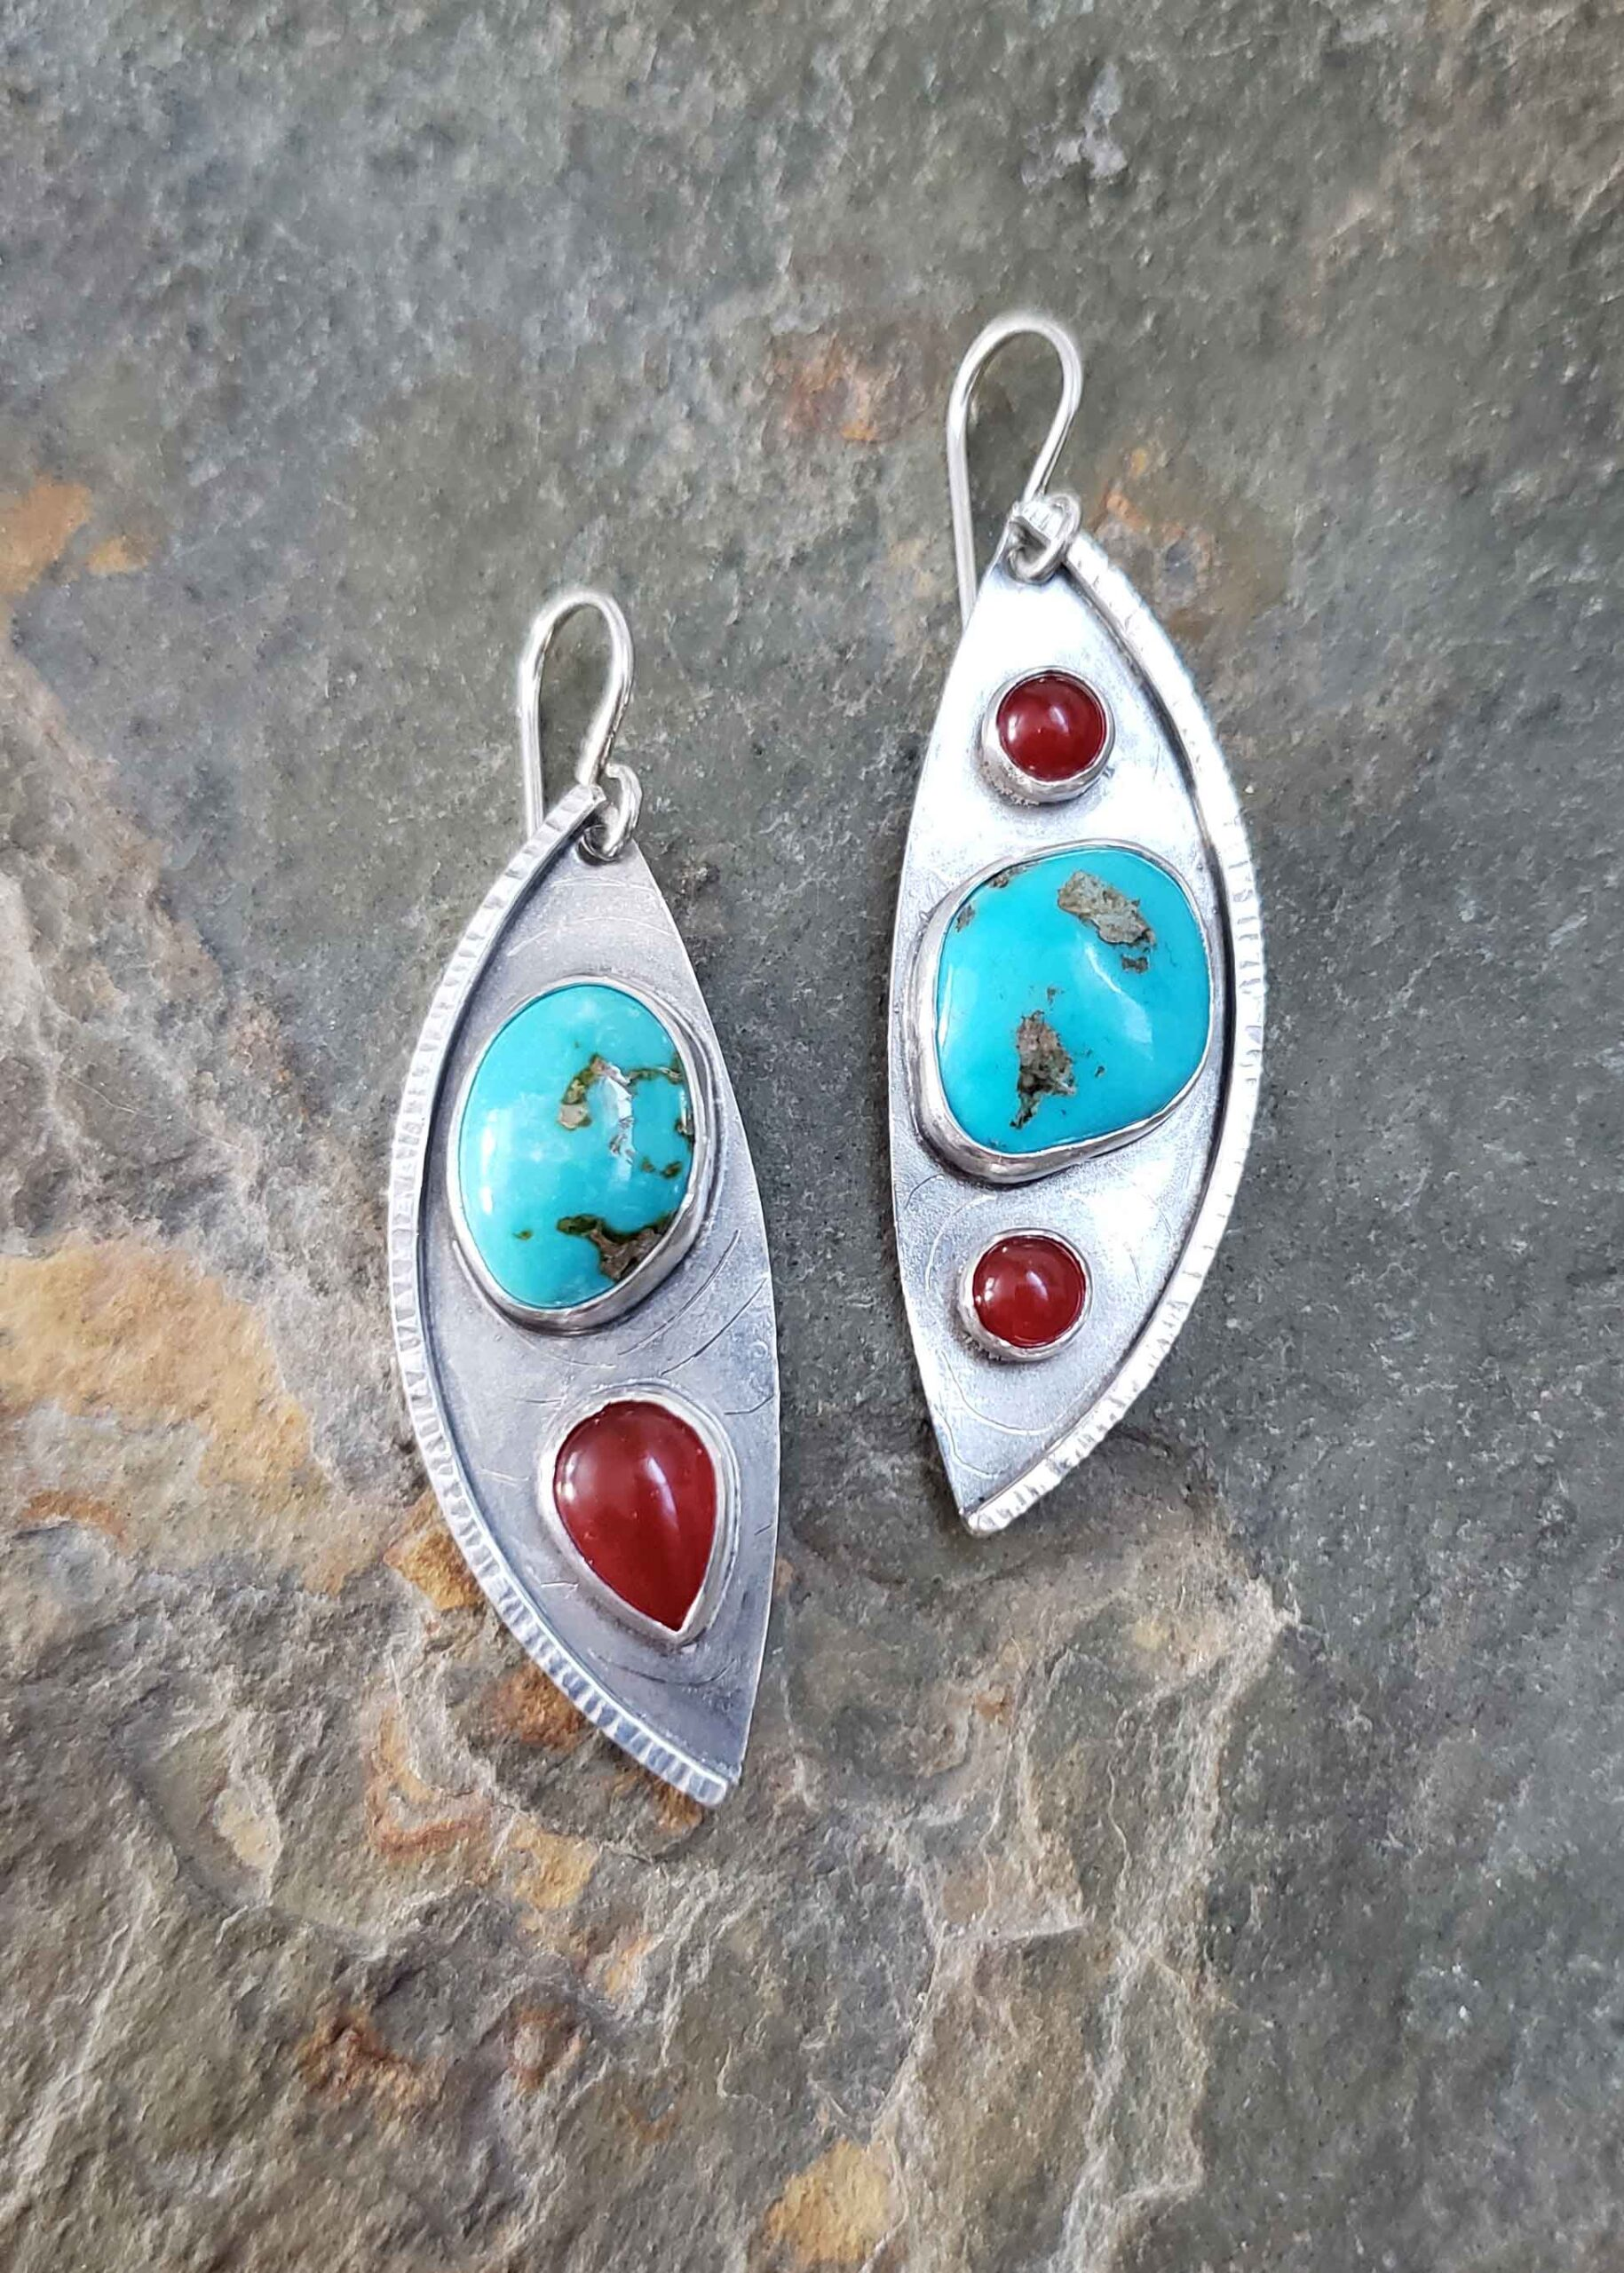 Silver, turquois and red carnelian contemporary earrings by Dona Miller.